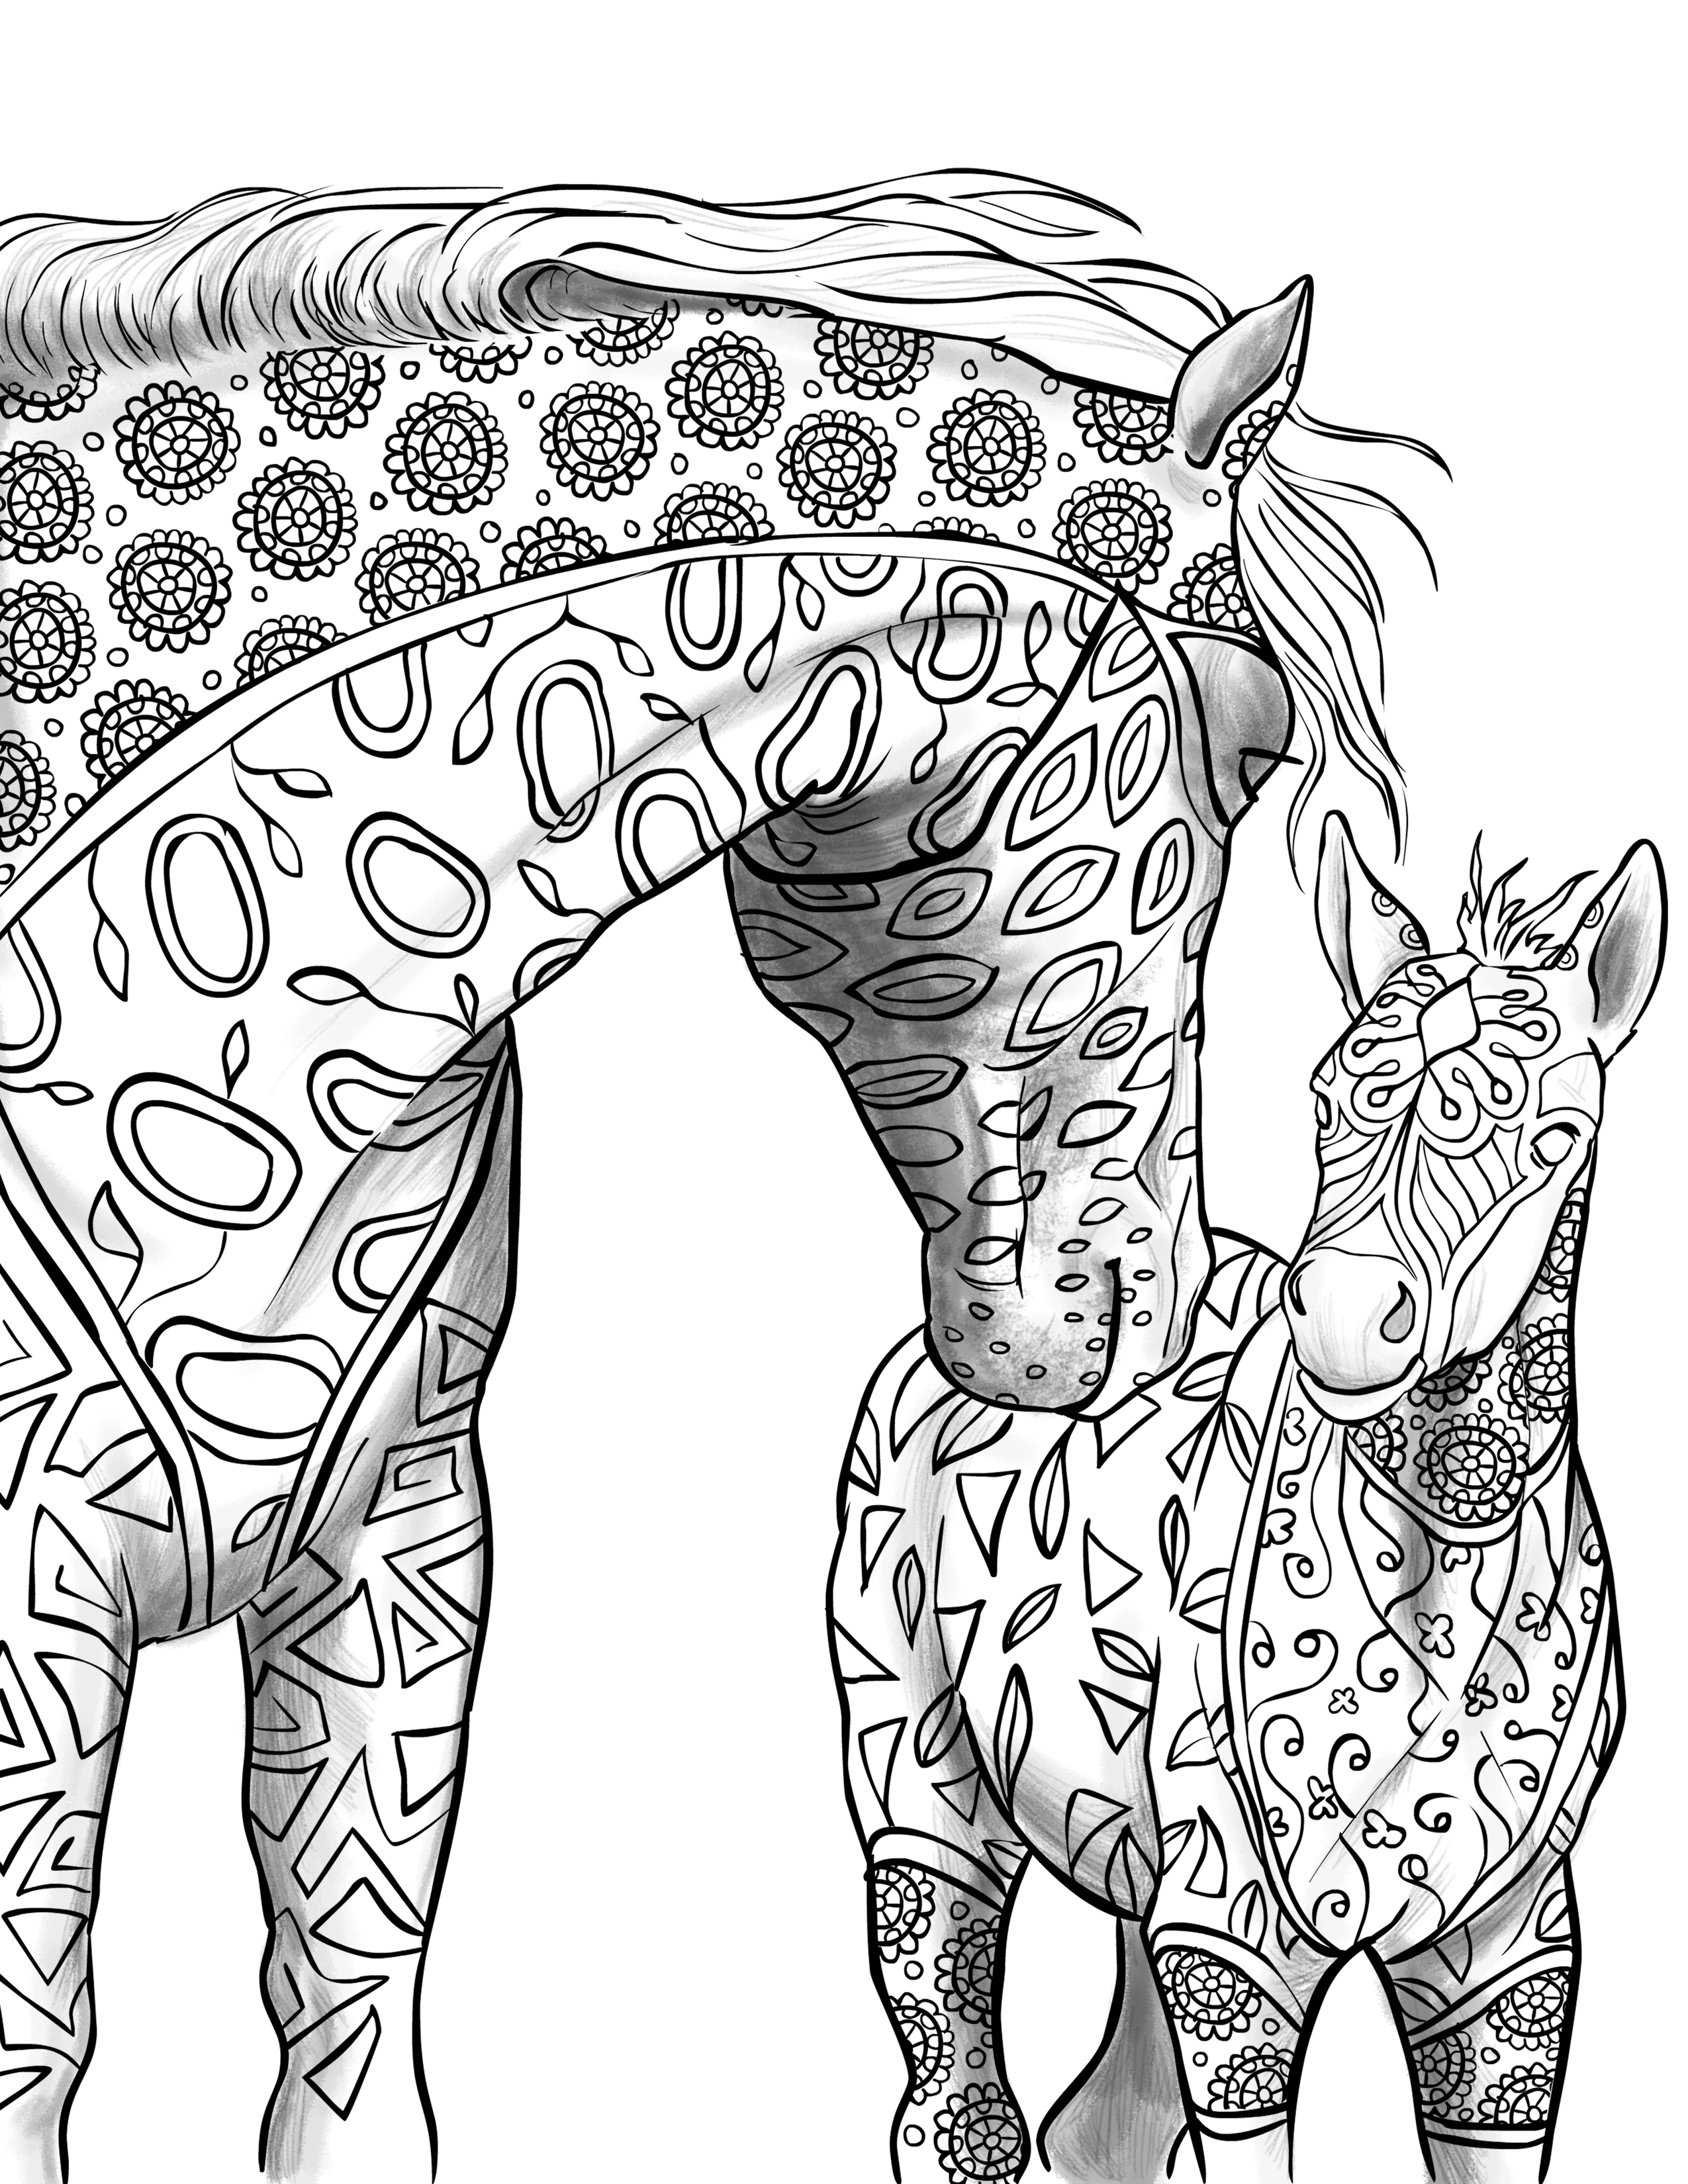 Coloring Book Samples Selah Works Adult Coloring Books